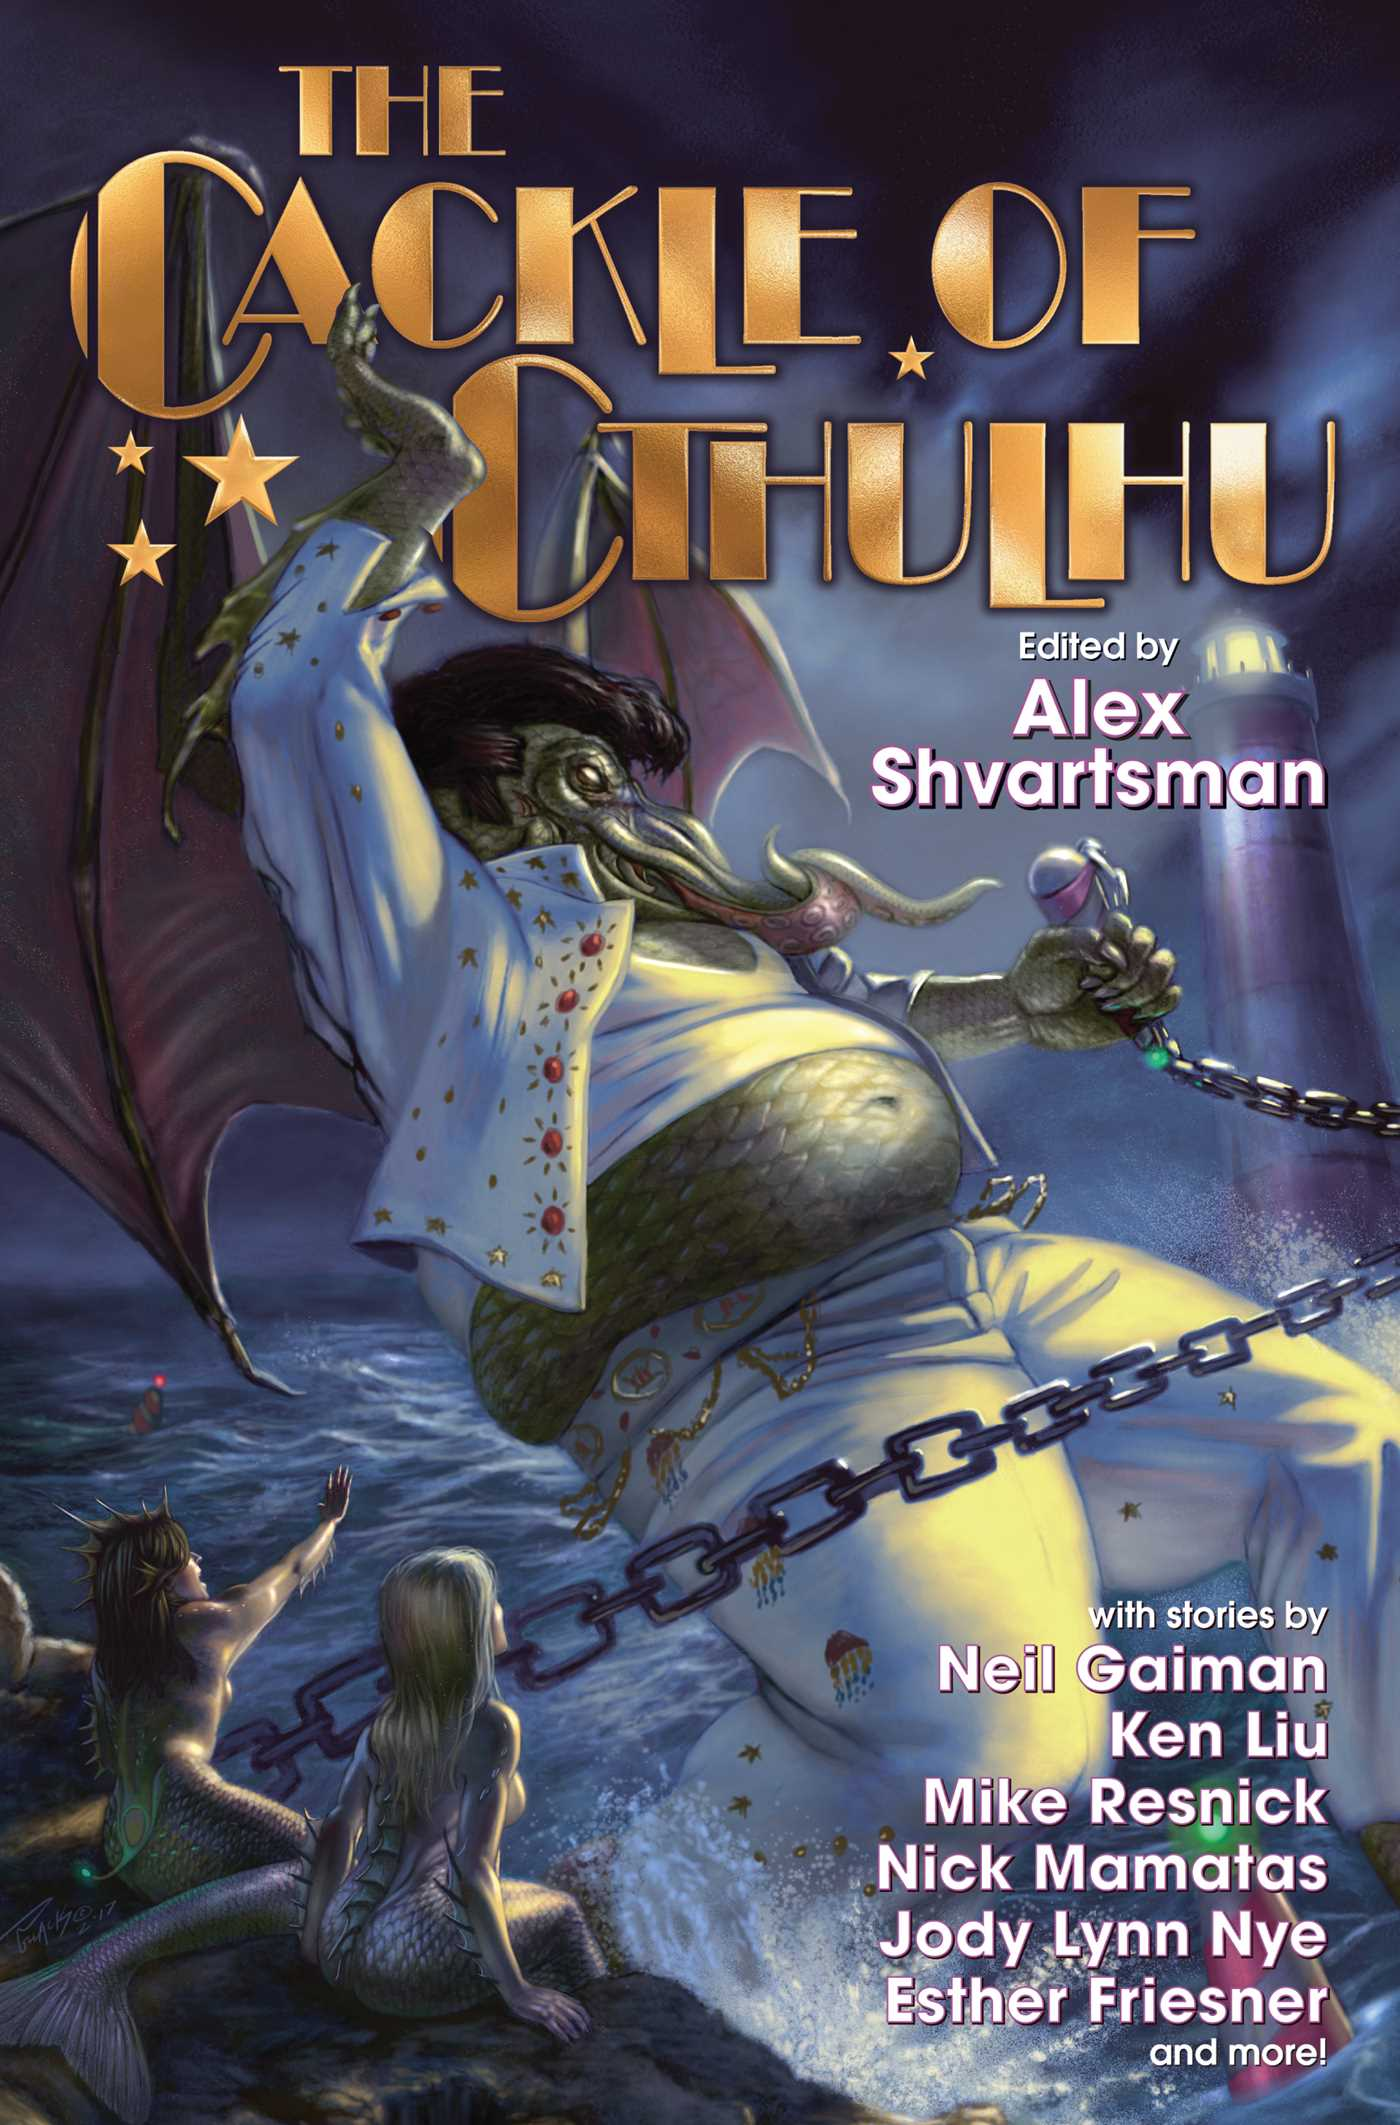 The cackle of cthulhu 9781481483001 hr